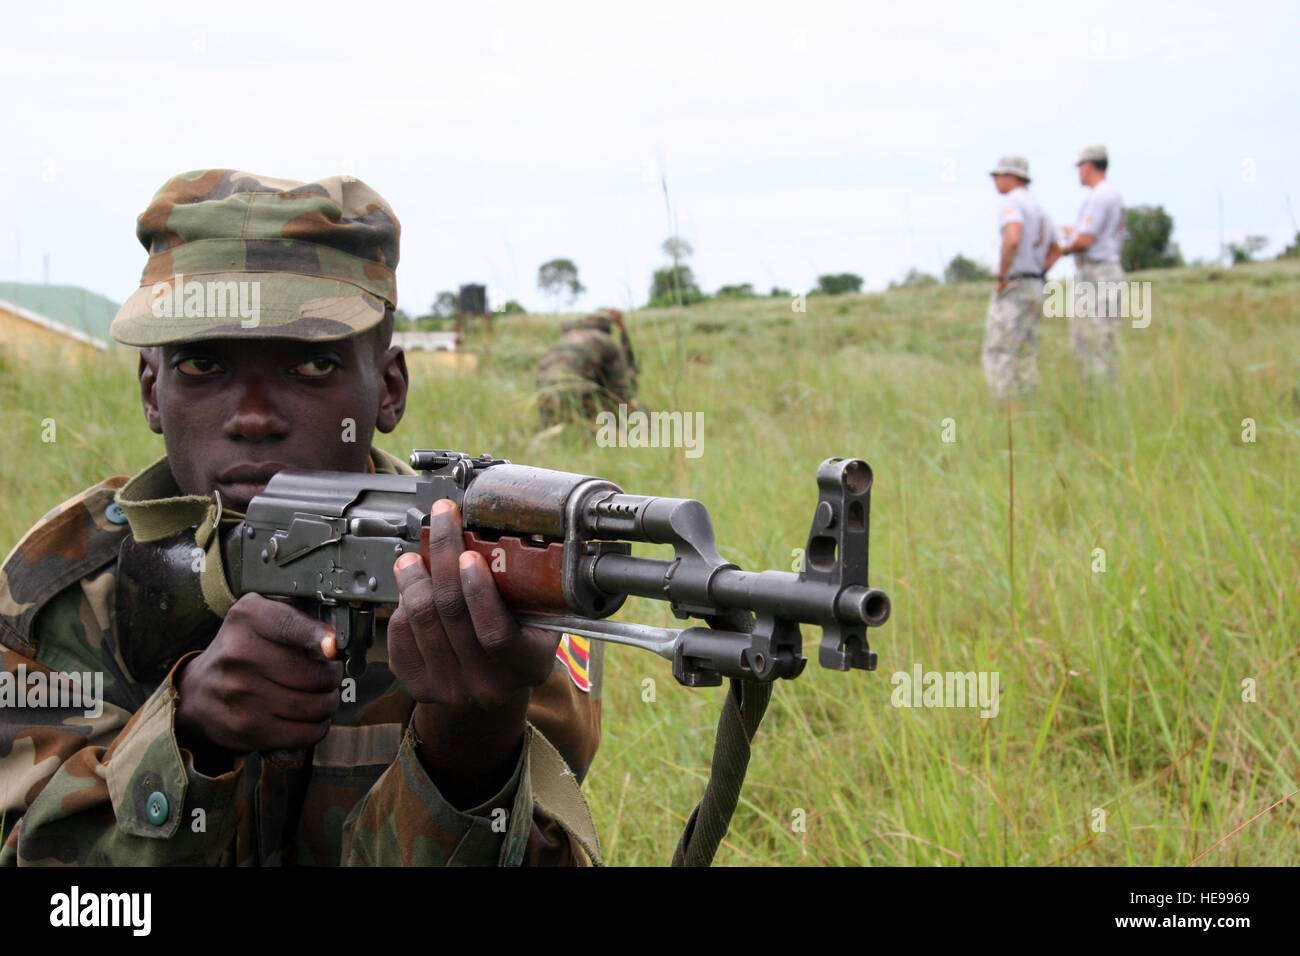 A Ugandan Peoples Defense Force Student Soldier Maintains Security While Other Members Of His Team Provide